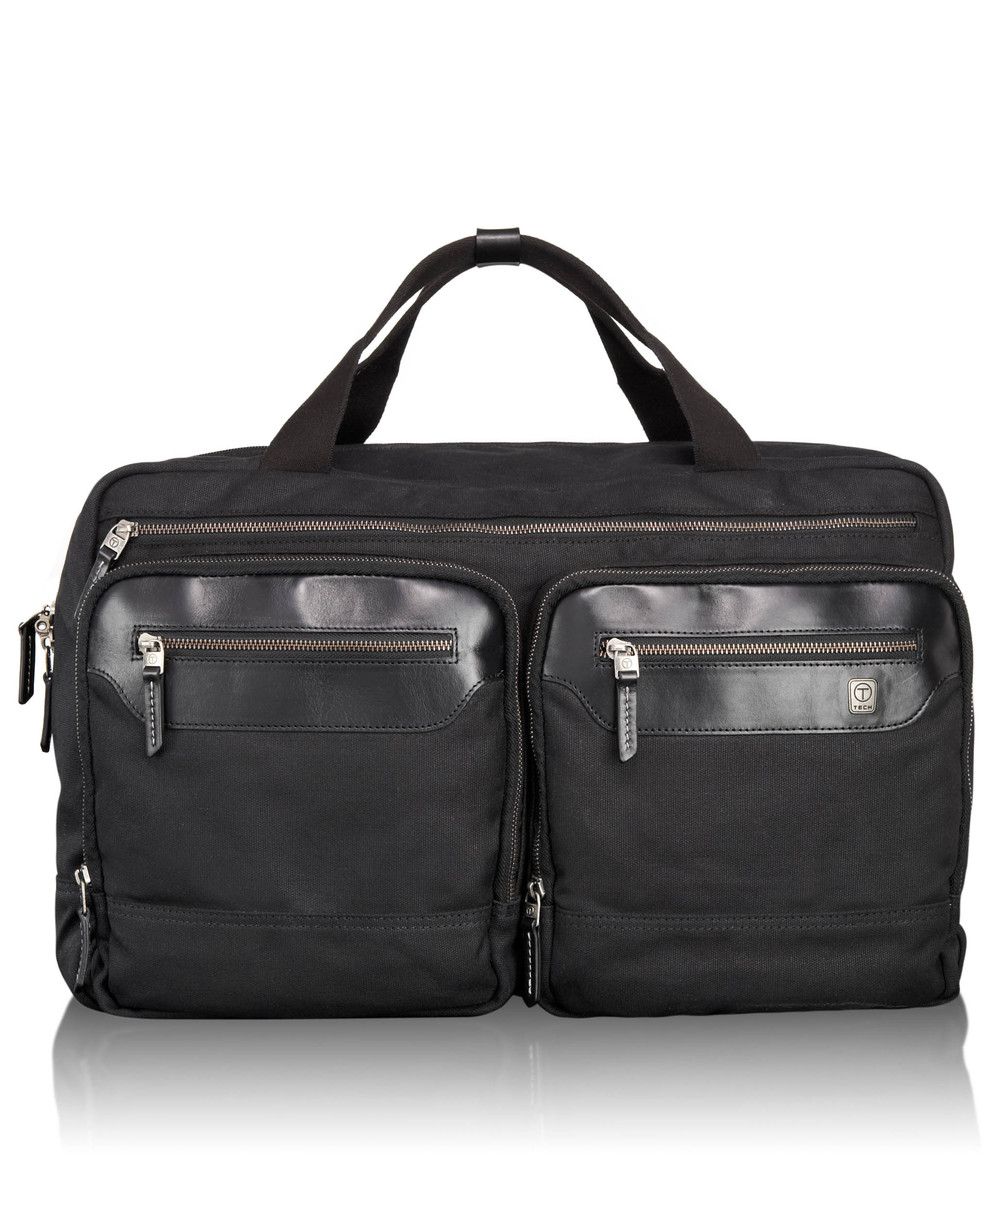 55152 Black T-Tech Forge Moore Soft Satchel  .jpg